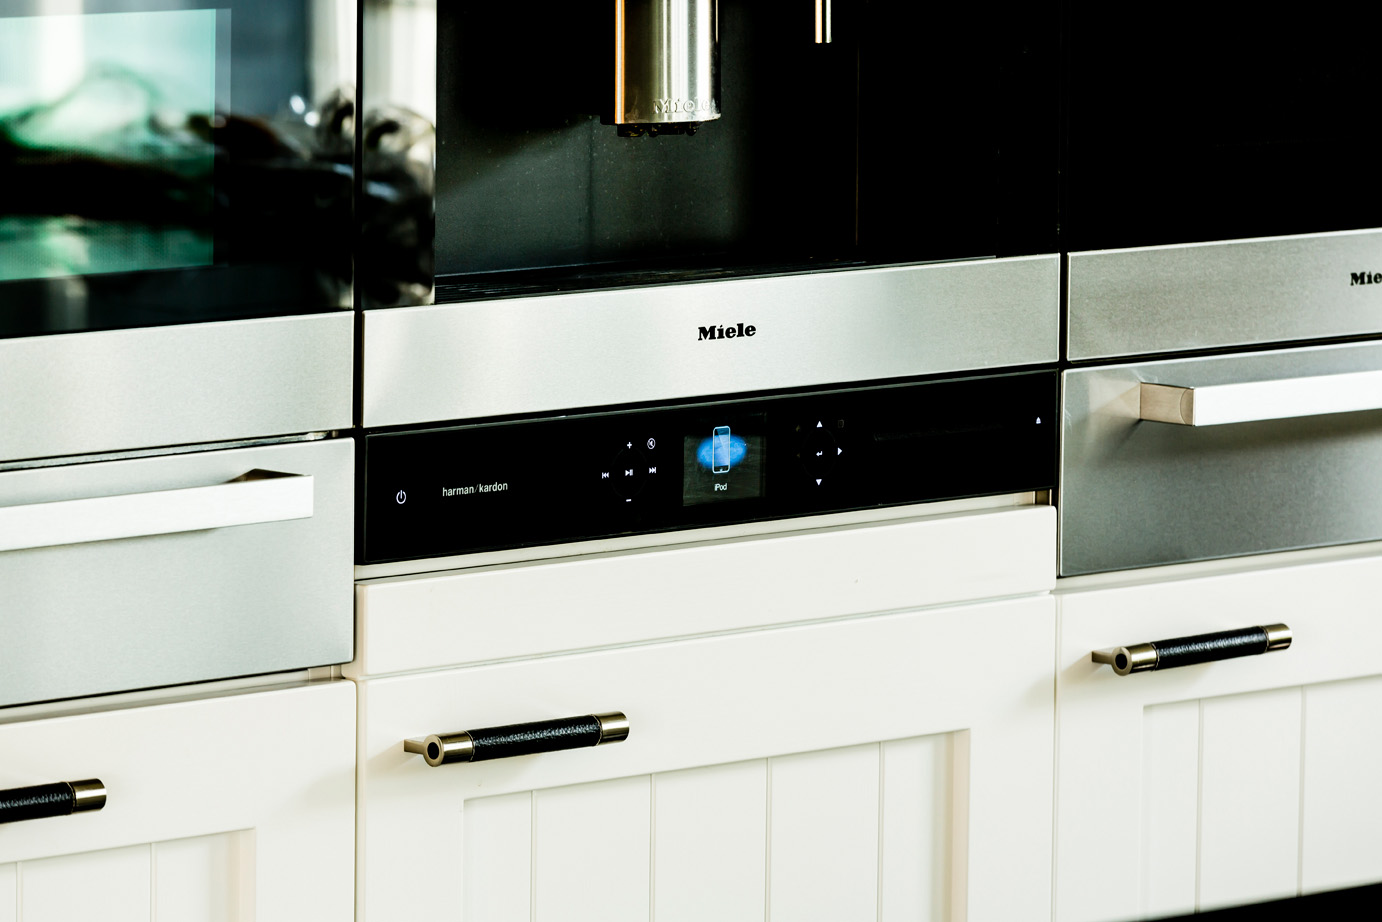 harman kardon maestrokitchen